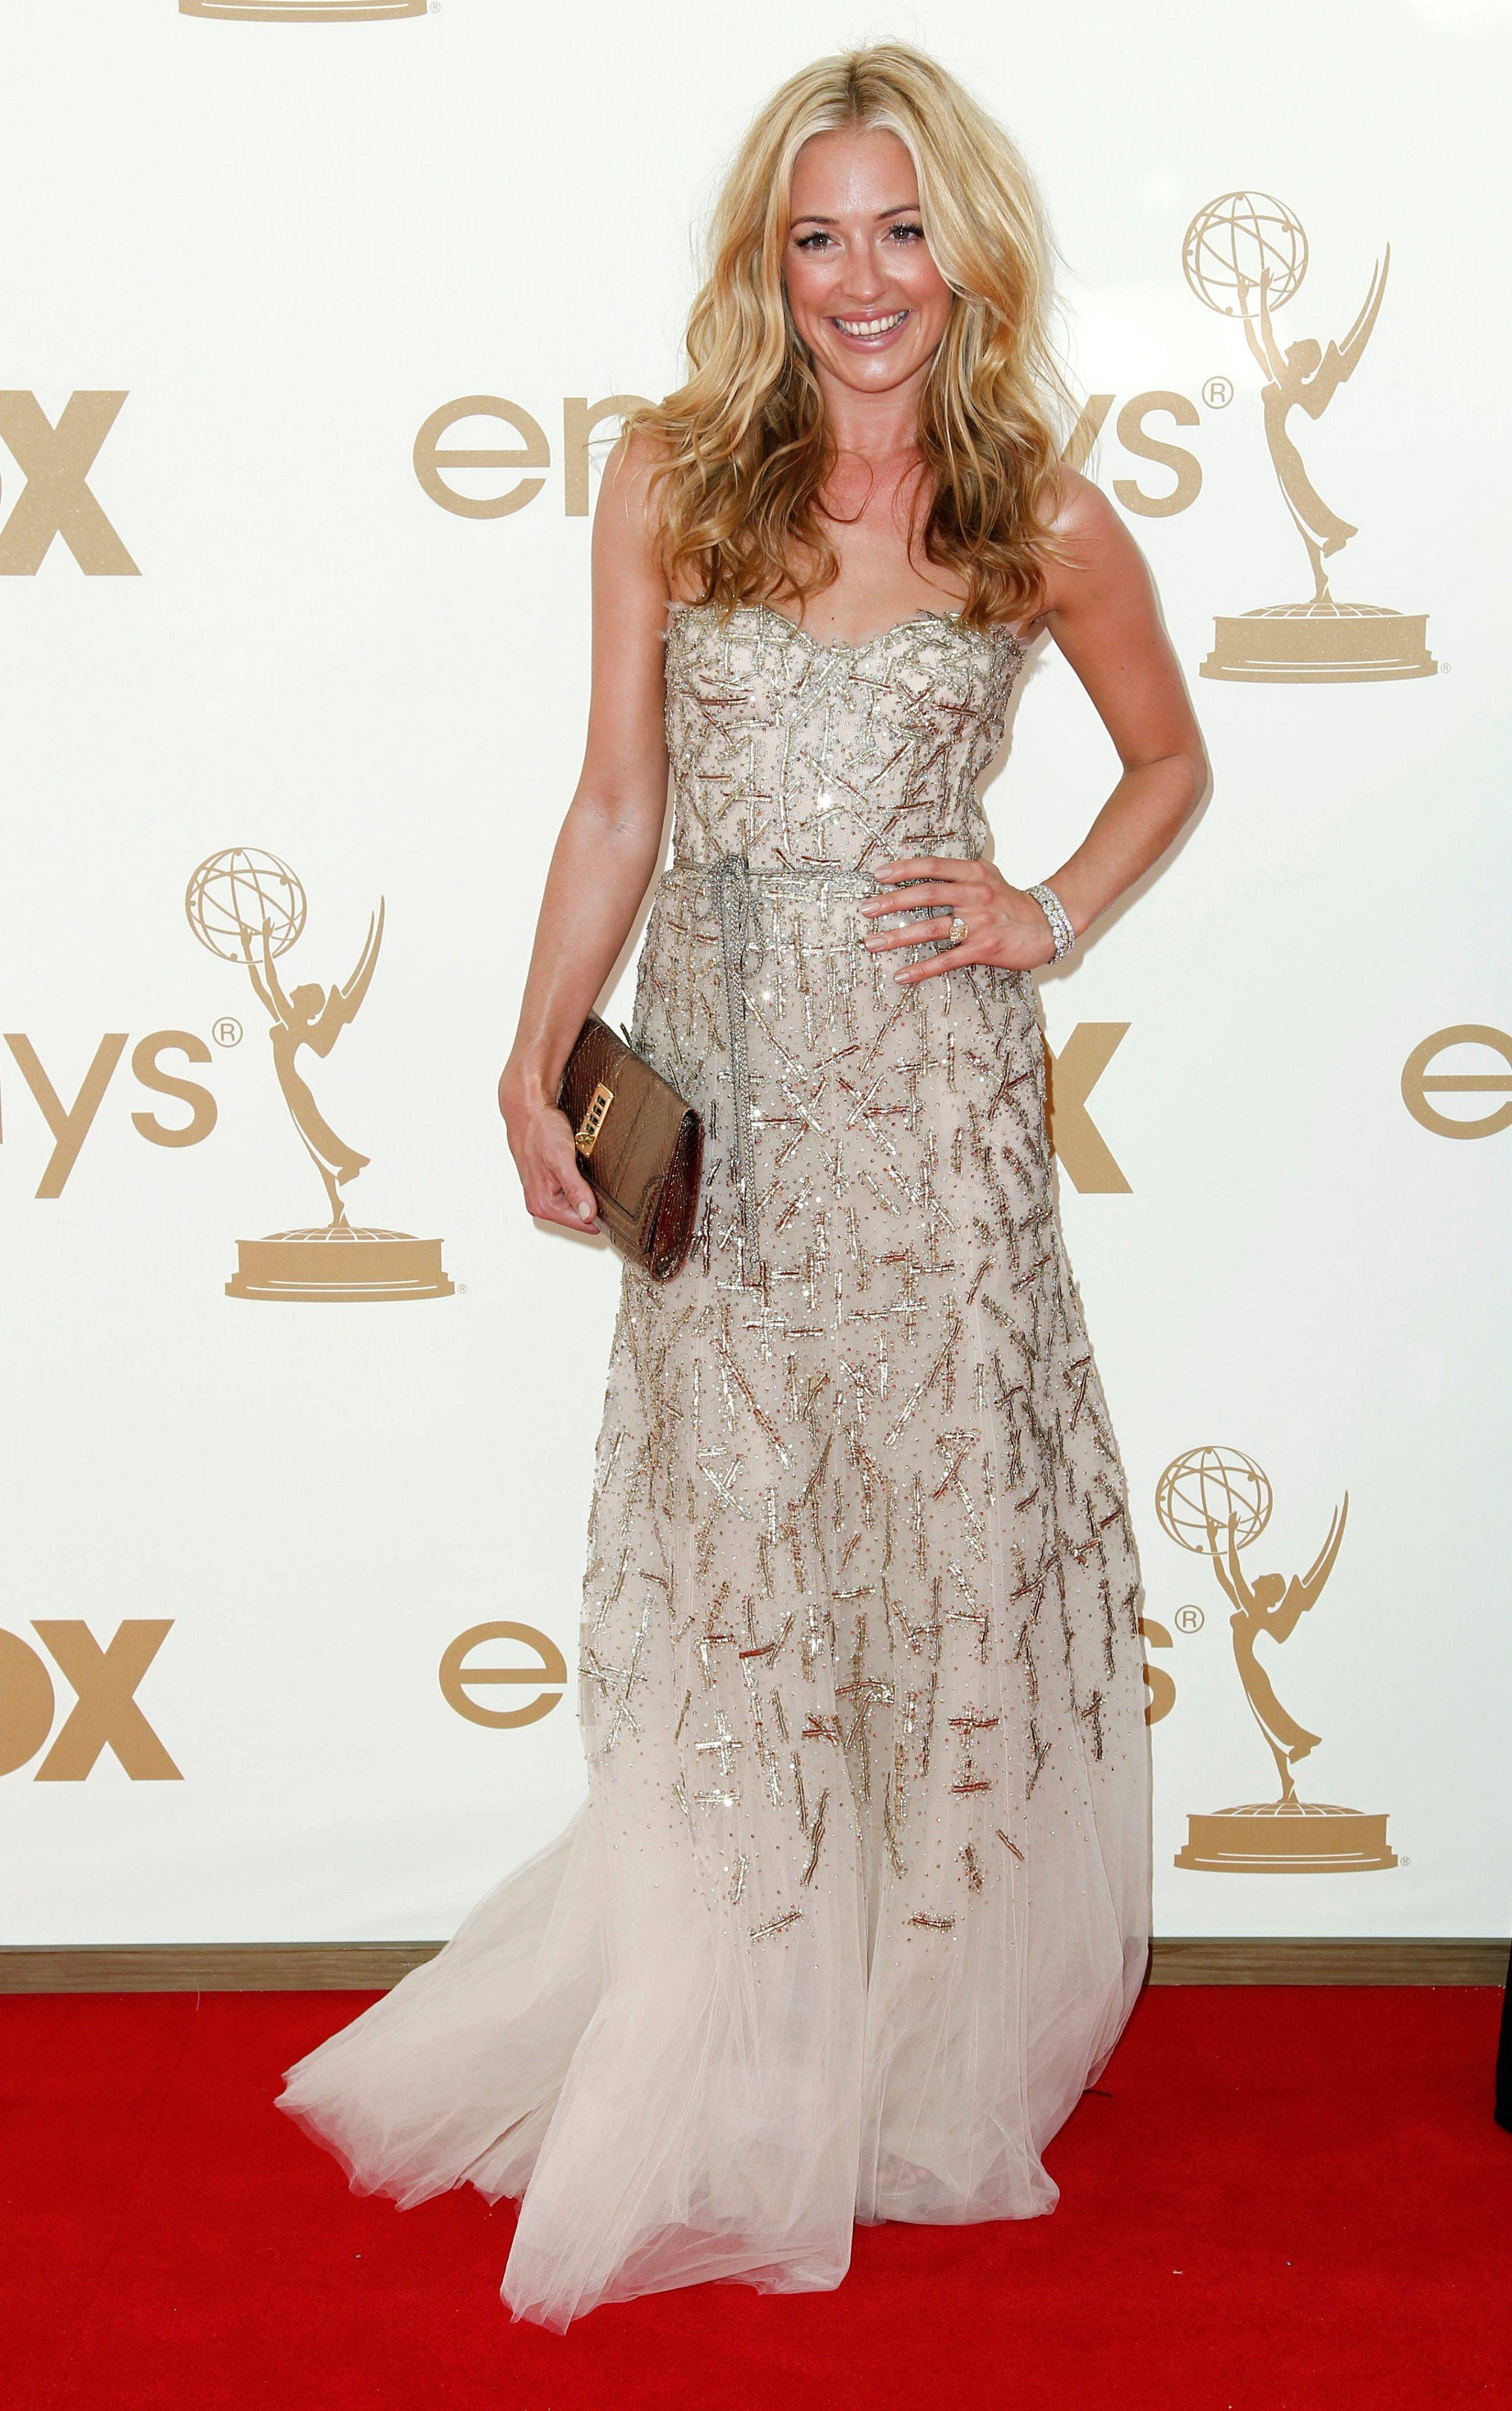 """So You Think You Can Dance"" host Cat Deeley gets in on the glittery trend of the evening."